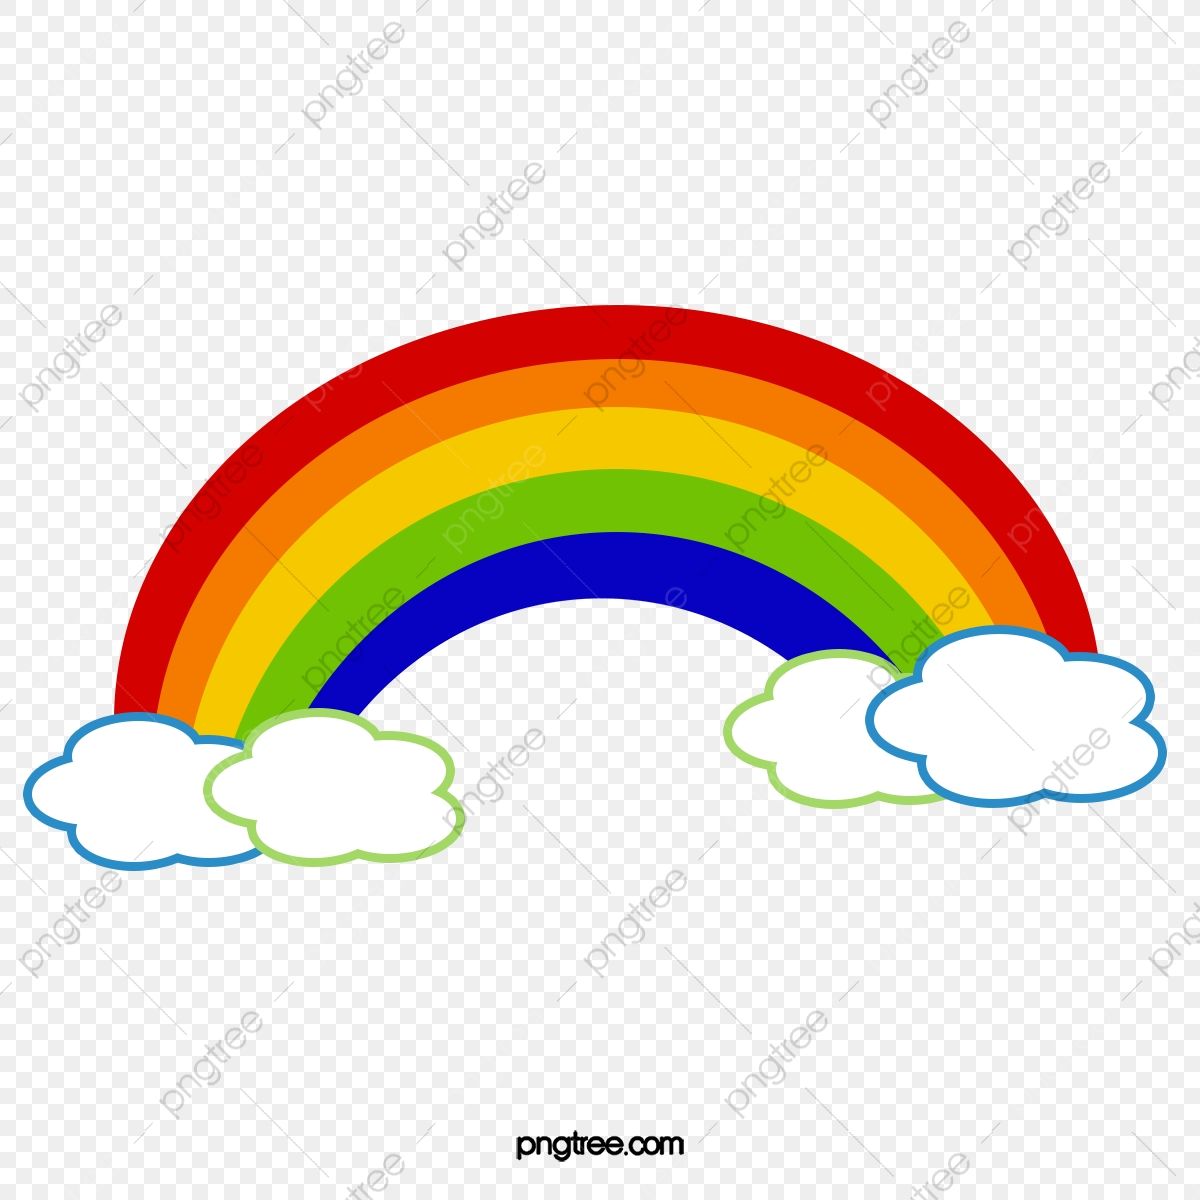 Clouds And Rainbow, Baiyun, Rainbow, Clouds PNG Transparent ... clipart library